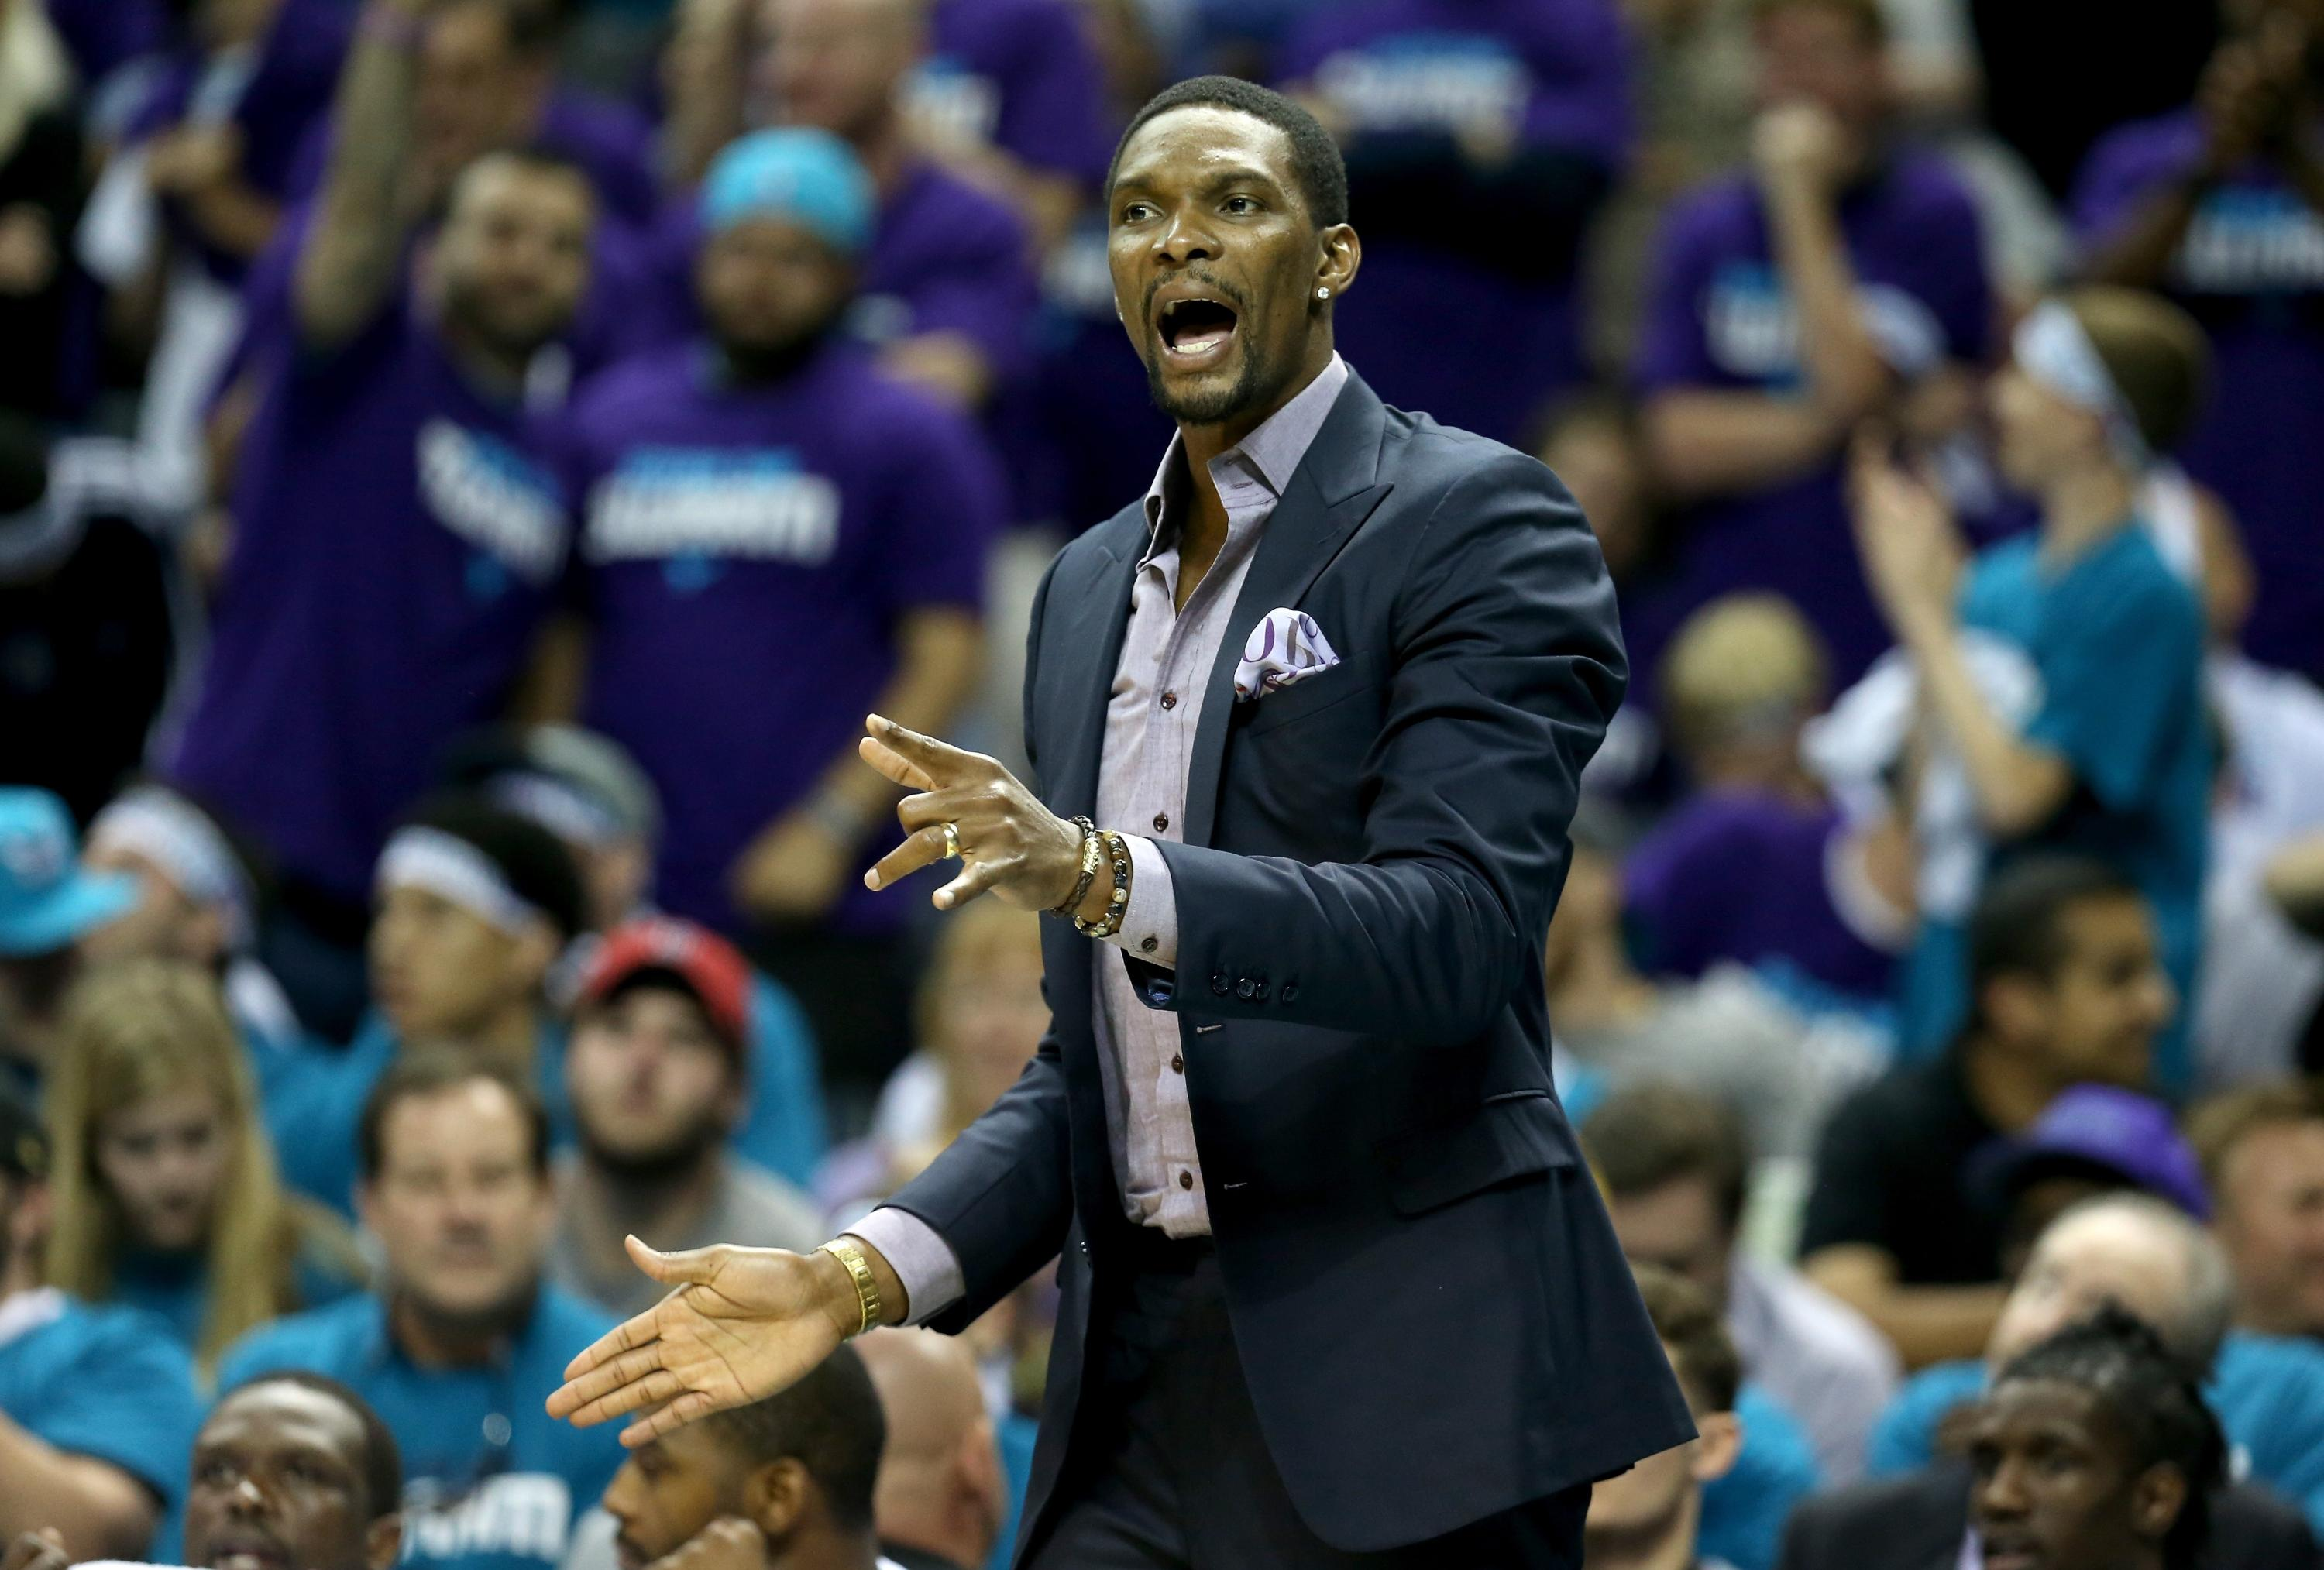 Report: Chris Bosh, Heat 'at a crossroads' over his health, return